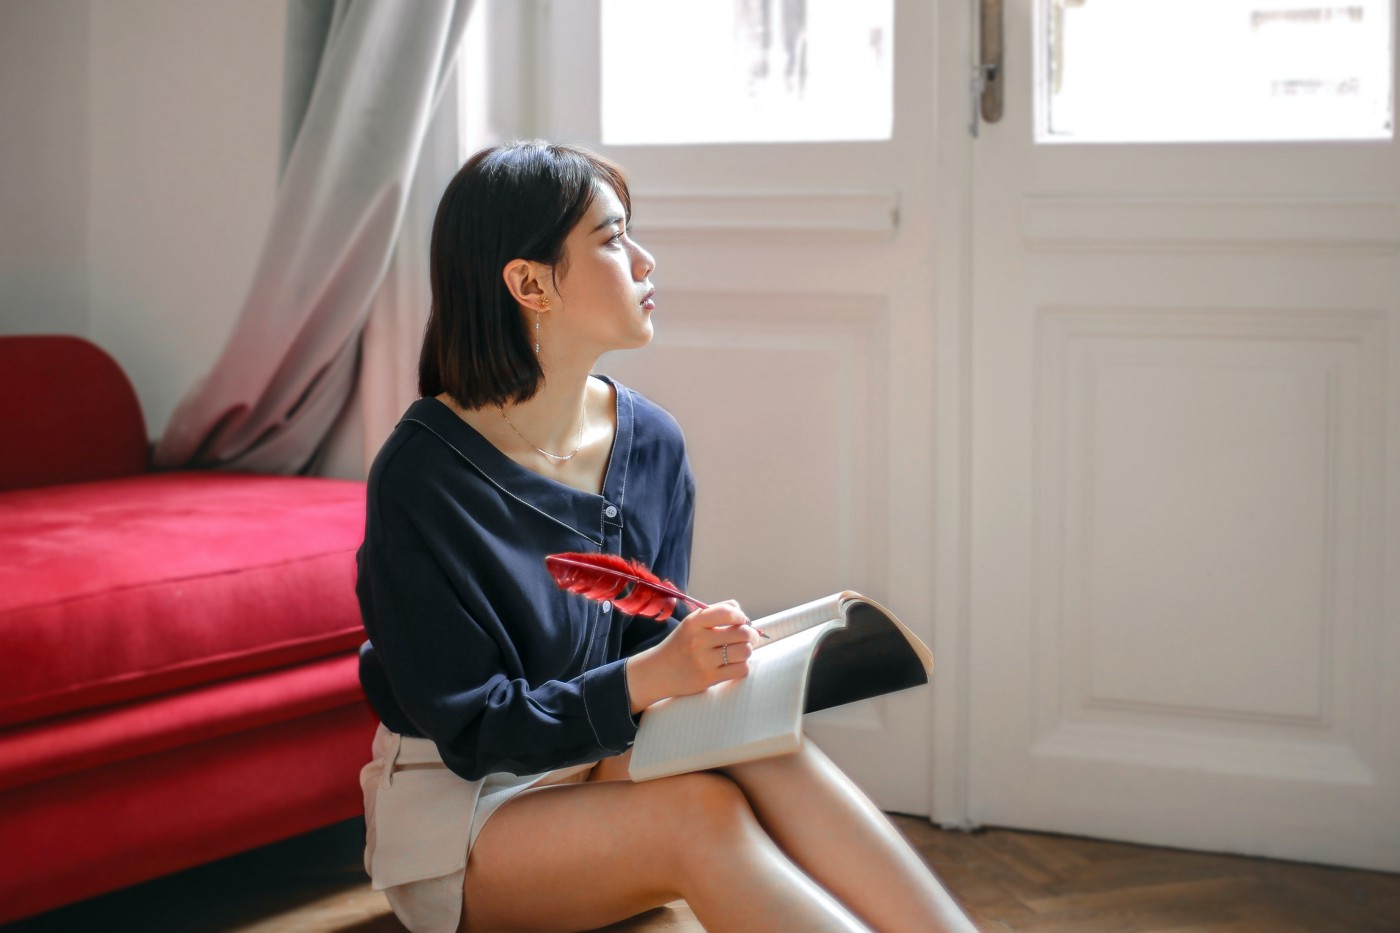 Young woman holding a notebook and feather pen, staring out the window in thought.